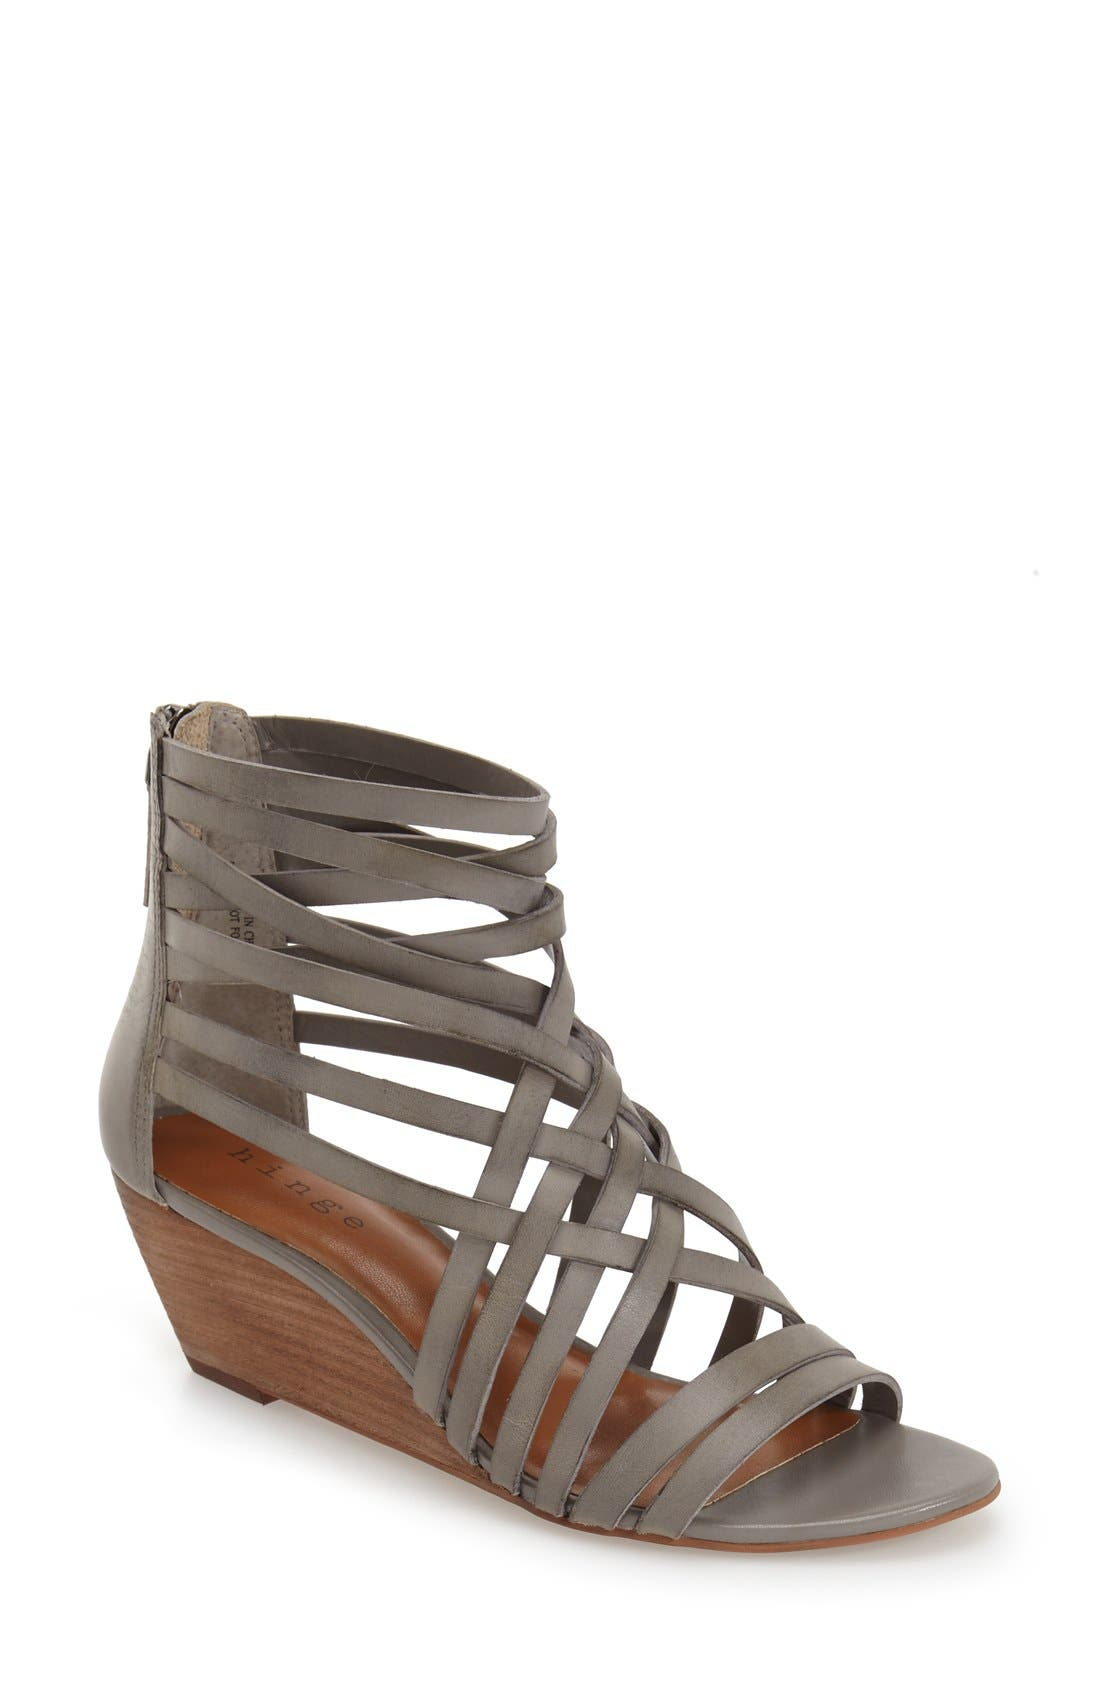 Main Image - Hinge 'Neta' Leather Wedge Sandal (Women)